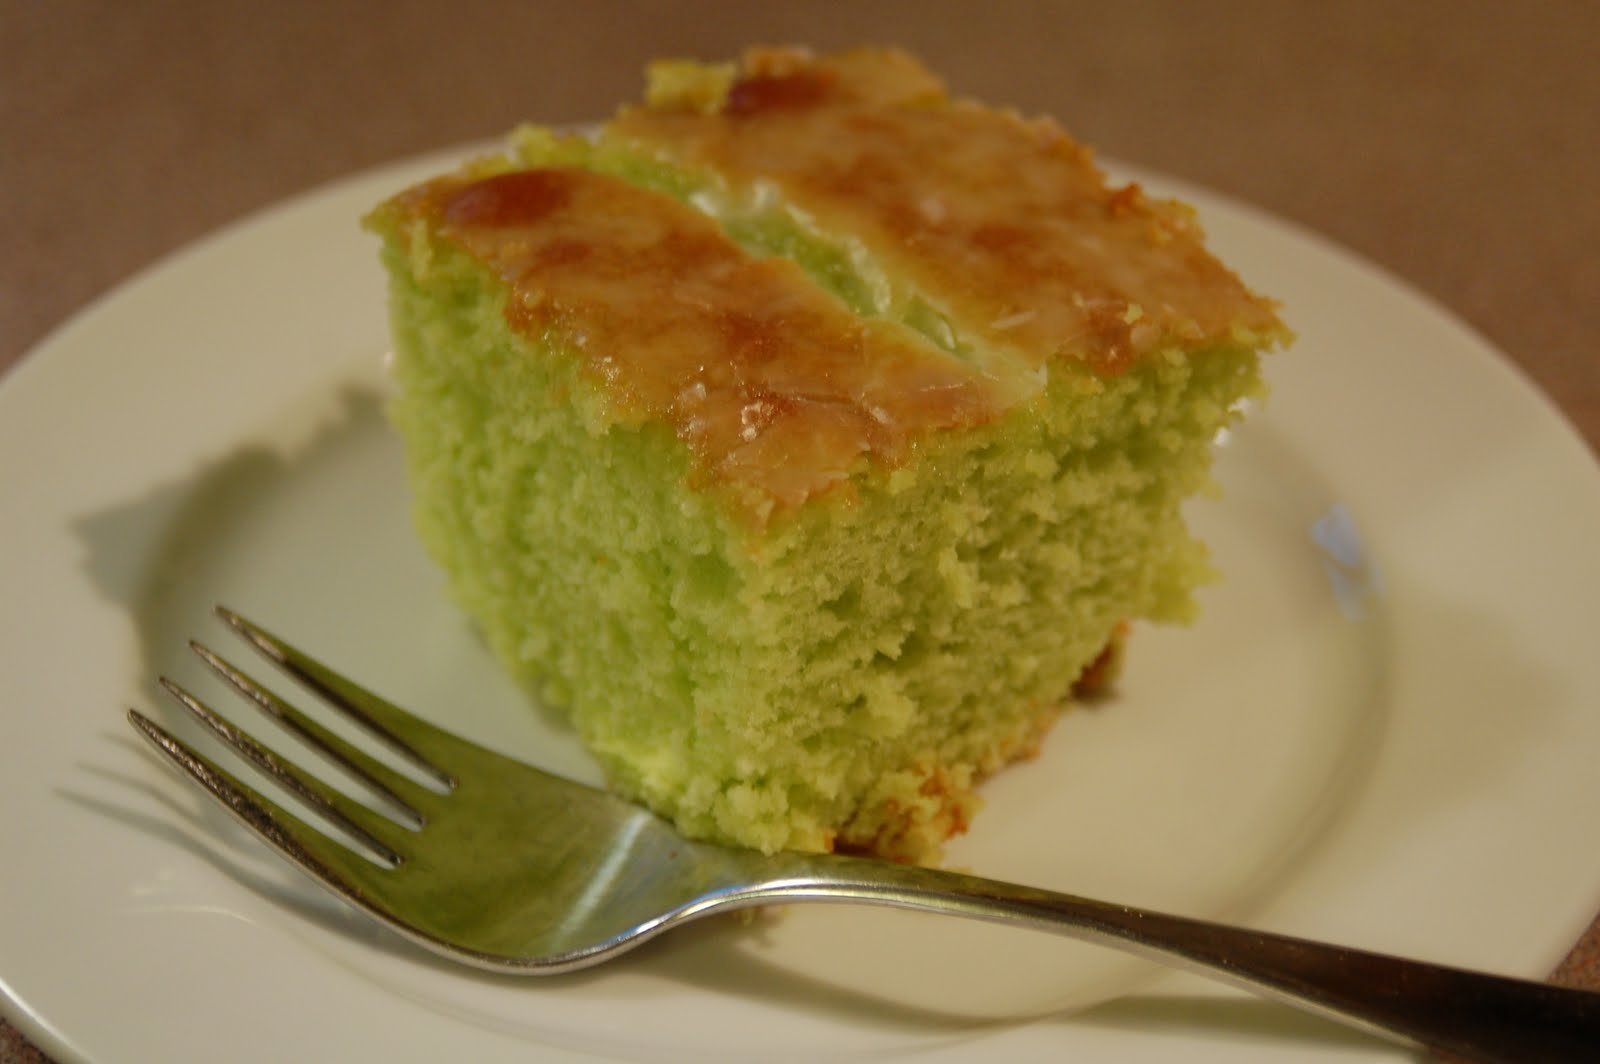 From Lorin's Kitchen: Lemon Pistachio Cake